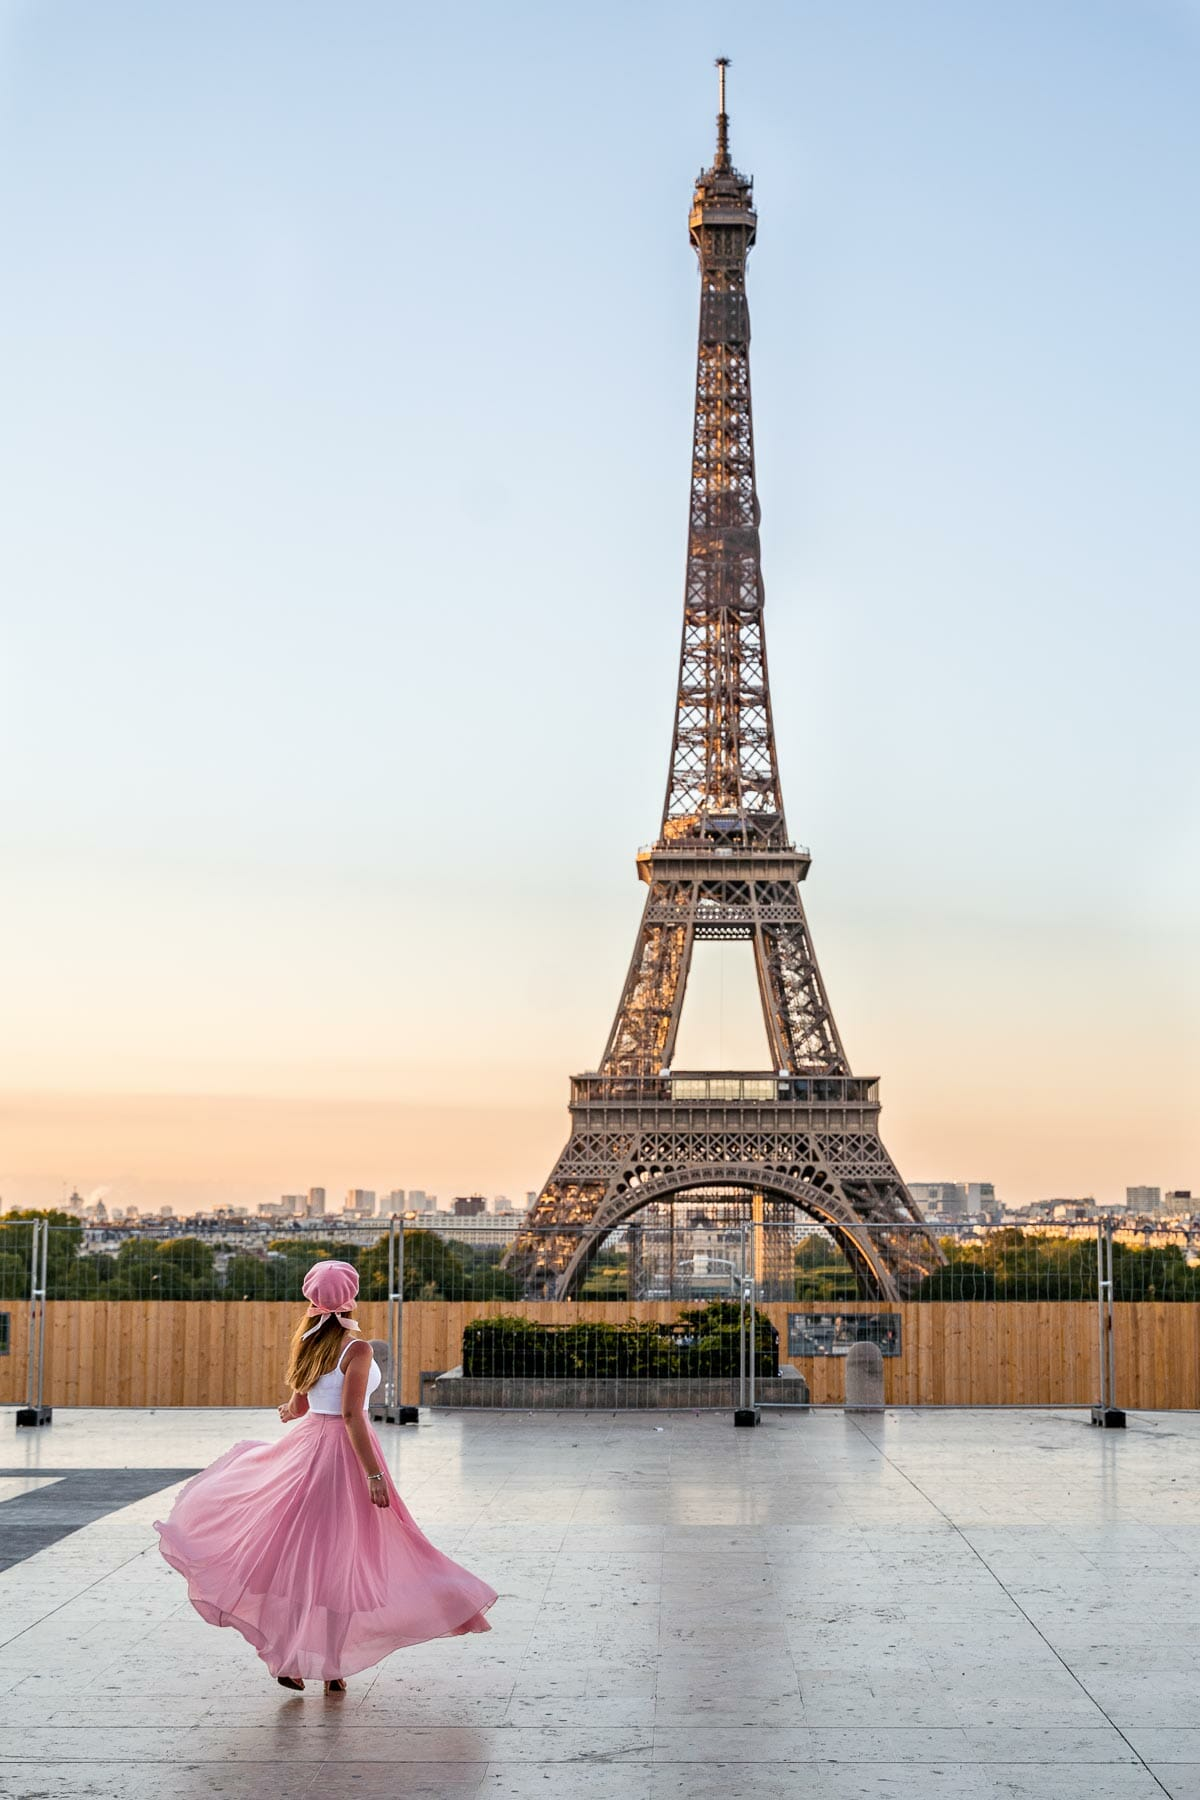 Girl in a pink skirt twirling in front of the Eiffel Tower at Trocadero, one of the most instagrammable places in Paris